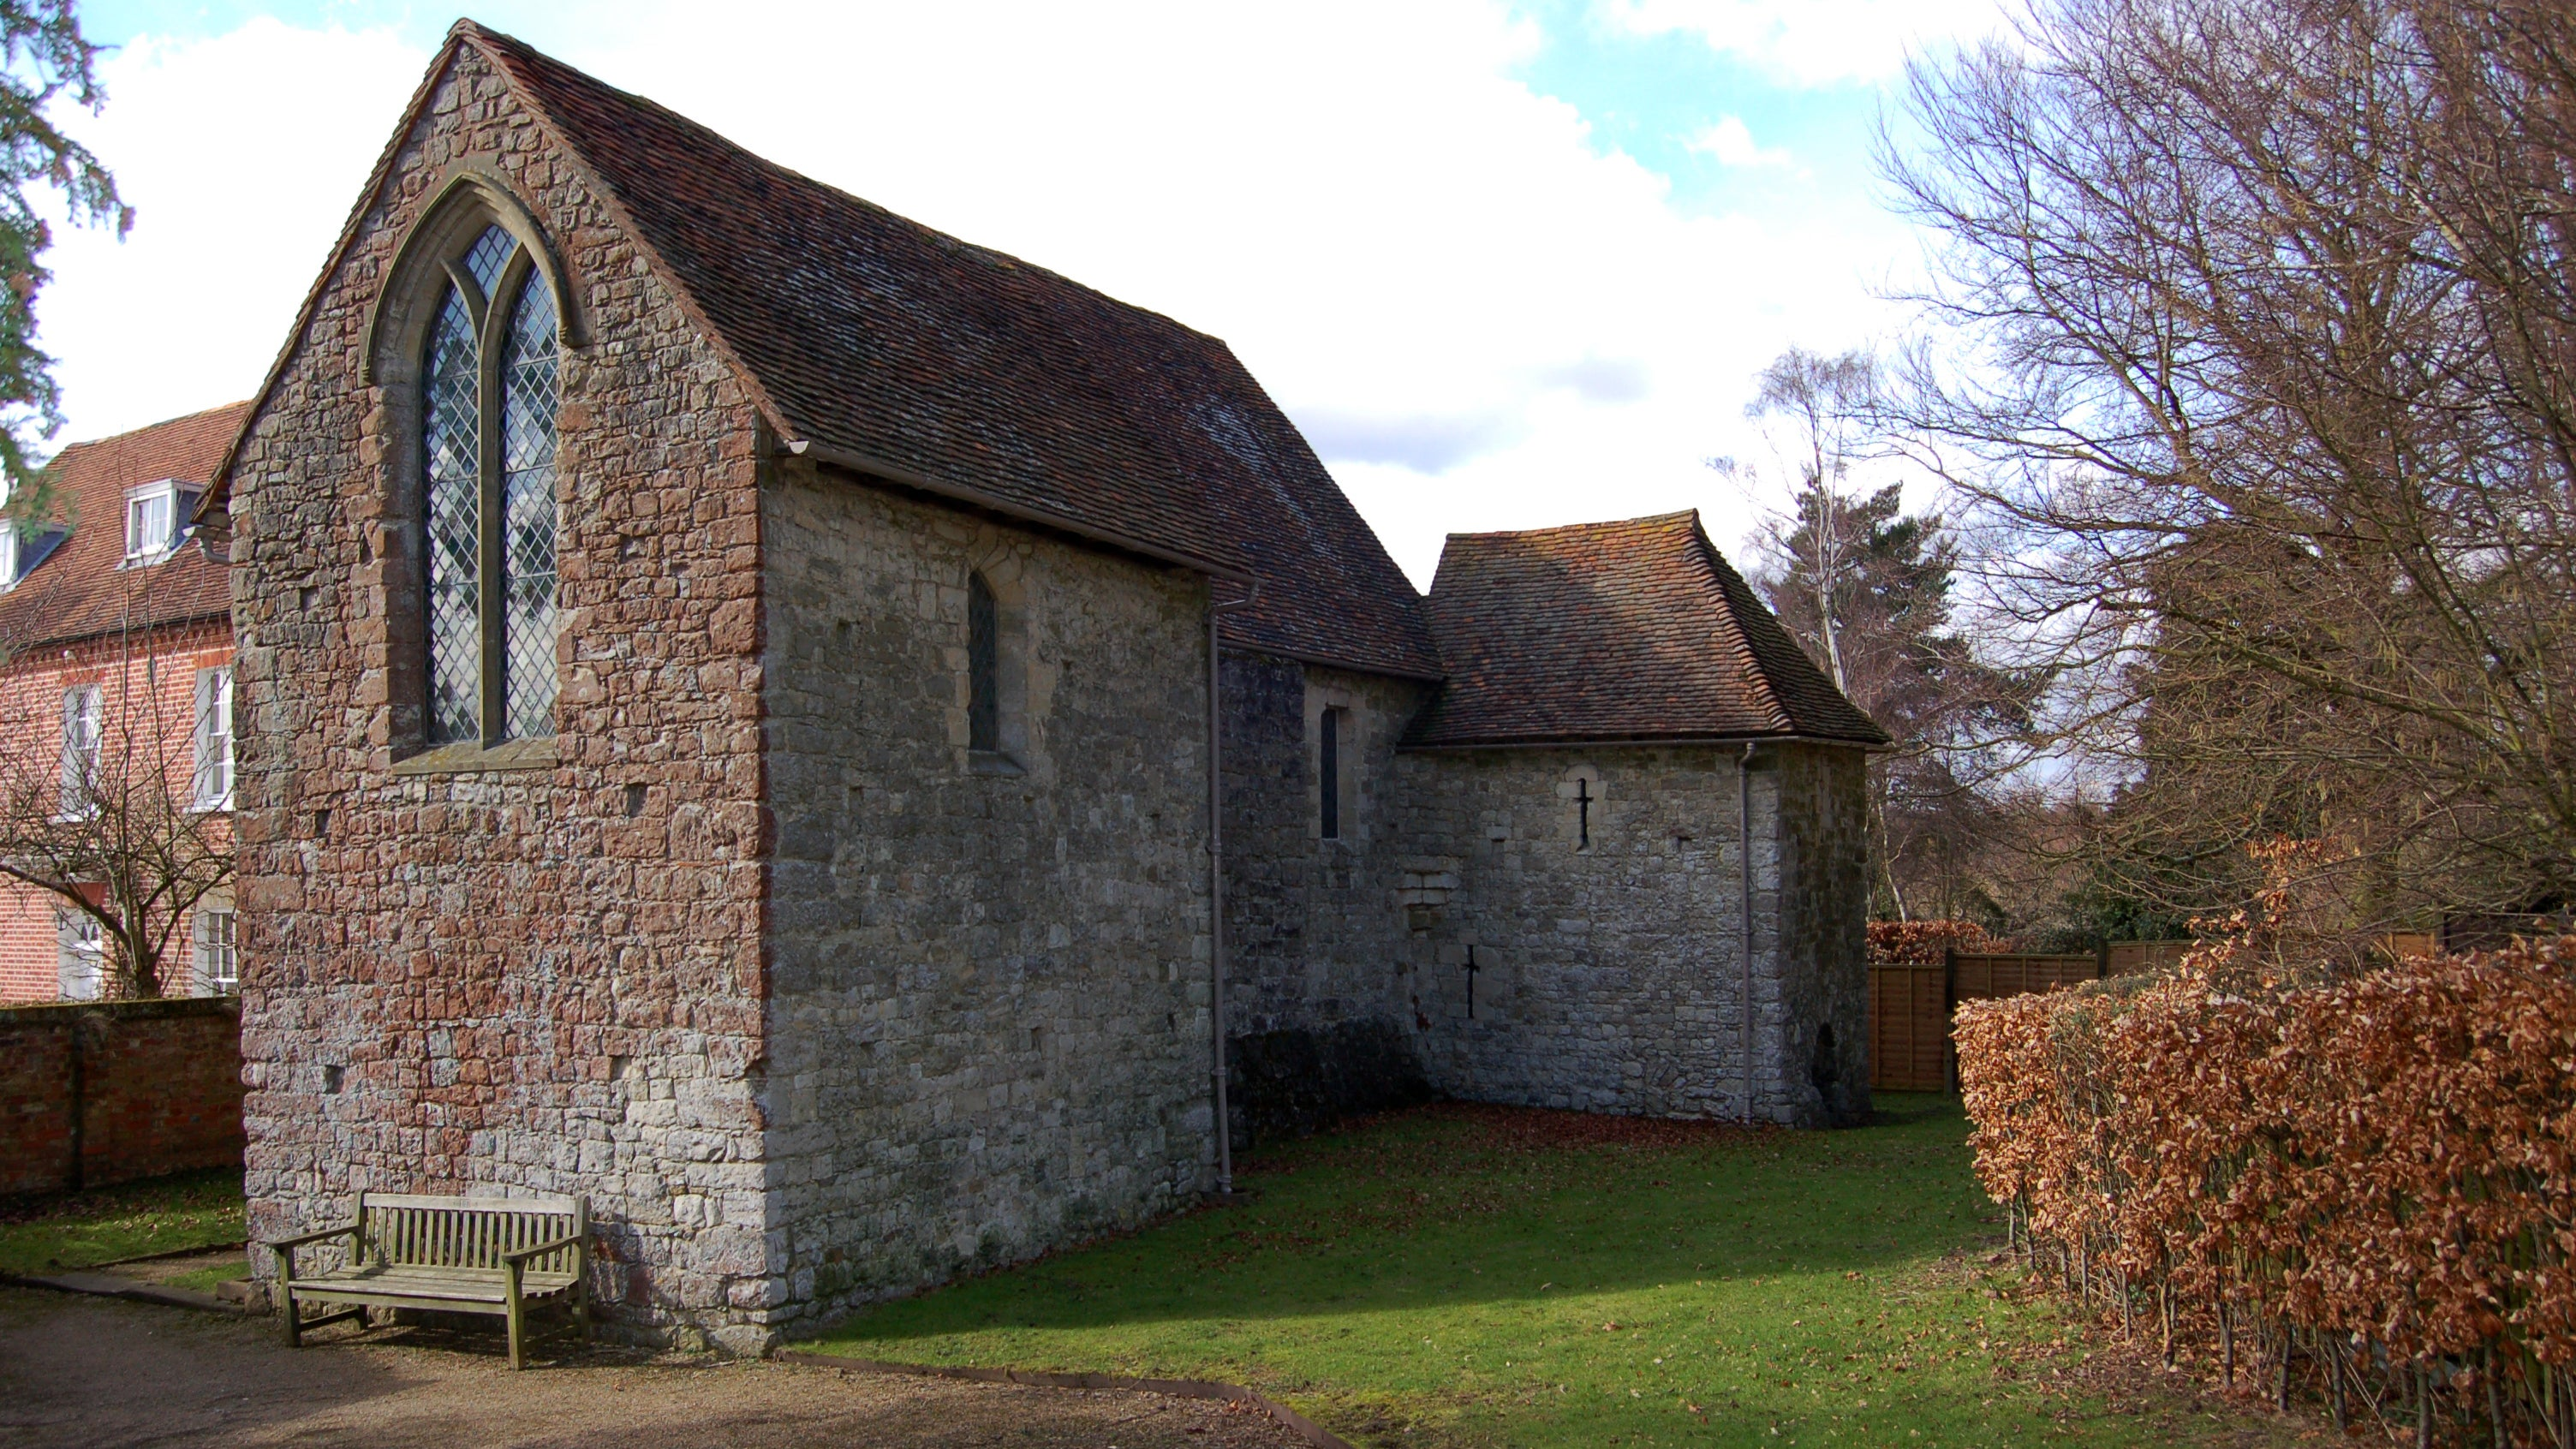 The exterior of the remaining 13th century home